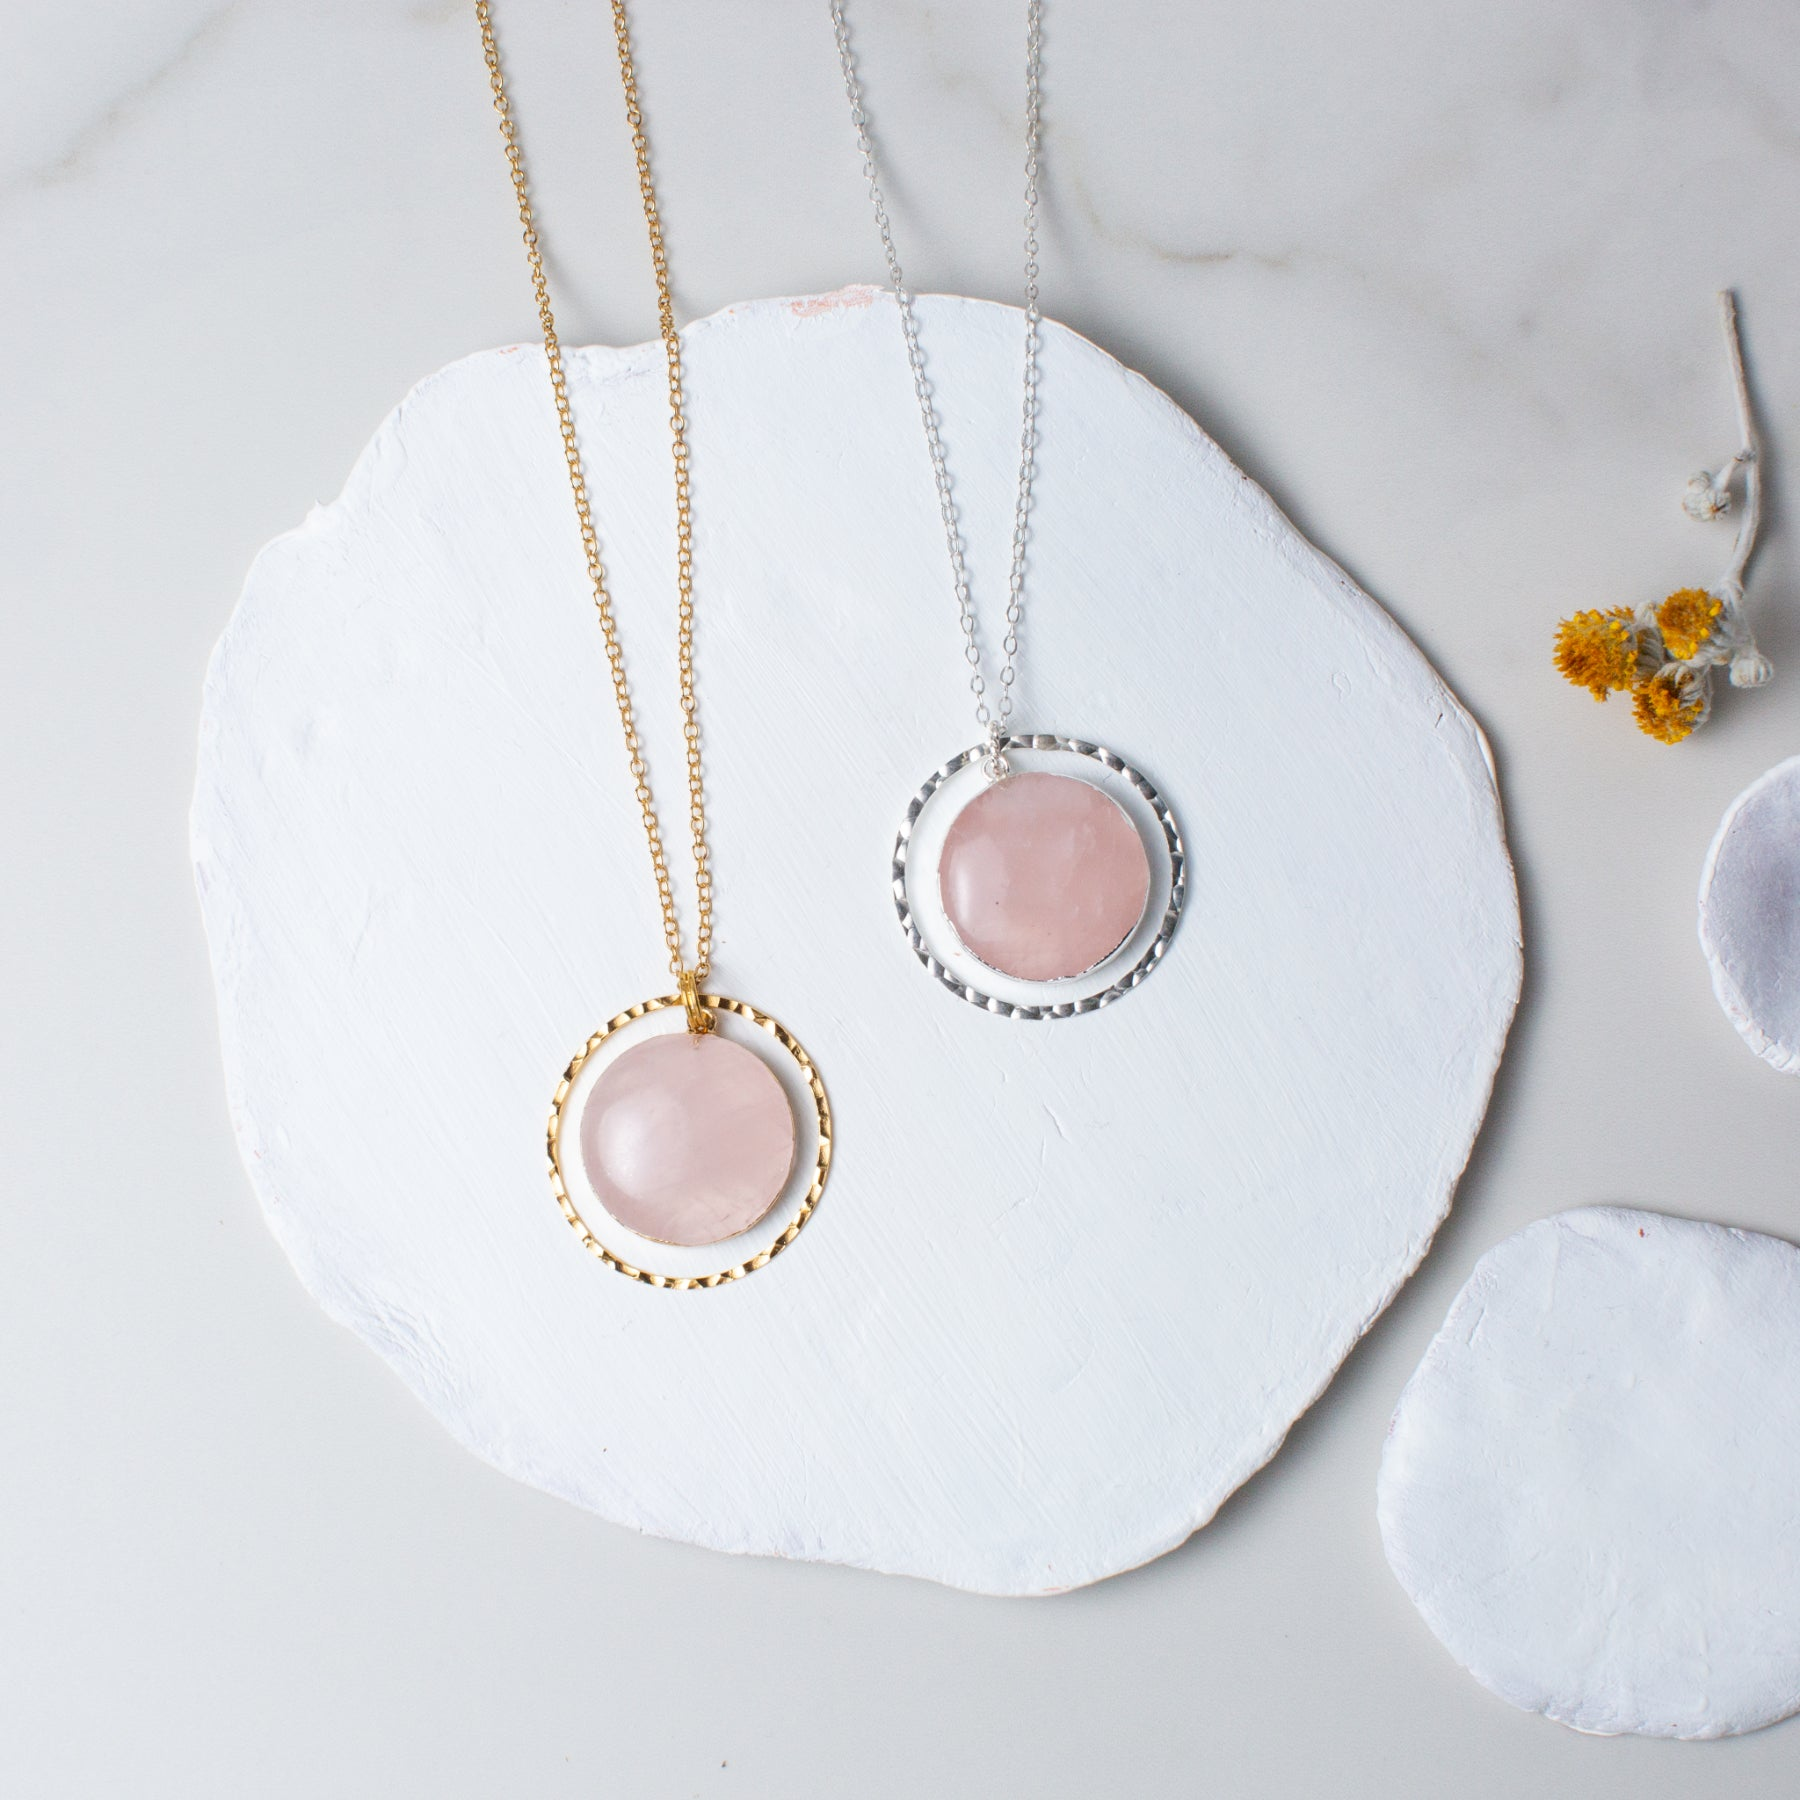 Circular Rose Quartz and Gold or Silver Hammered Circle Necklace 'I Am Loved' Flat Lay with Yellow Flowers and White Stones Photo by Asha Blooms